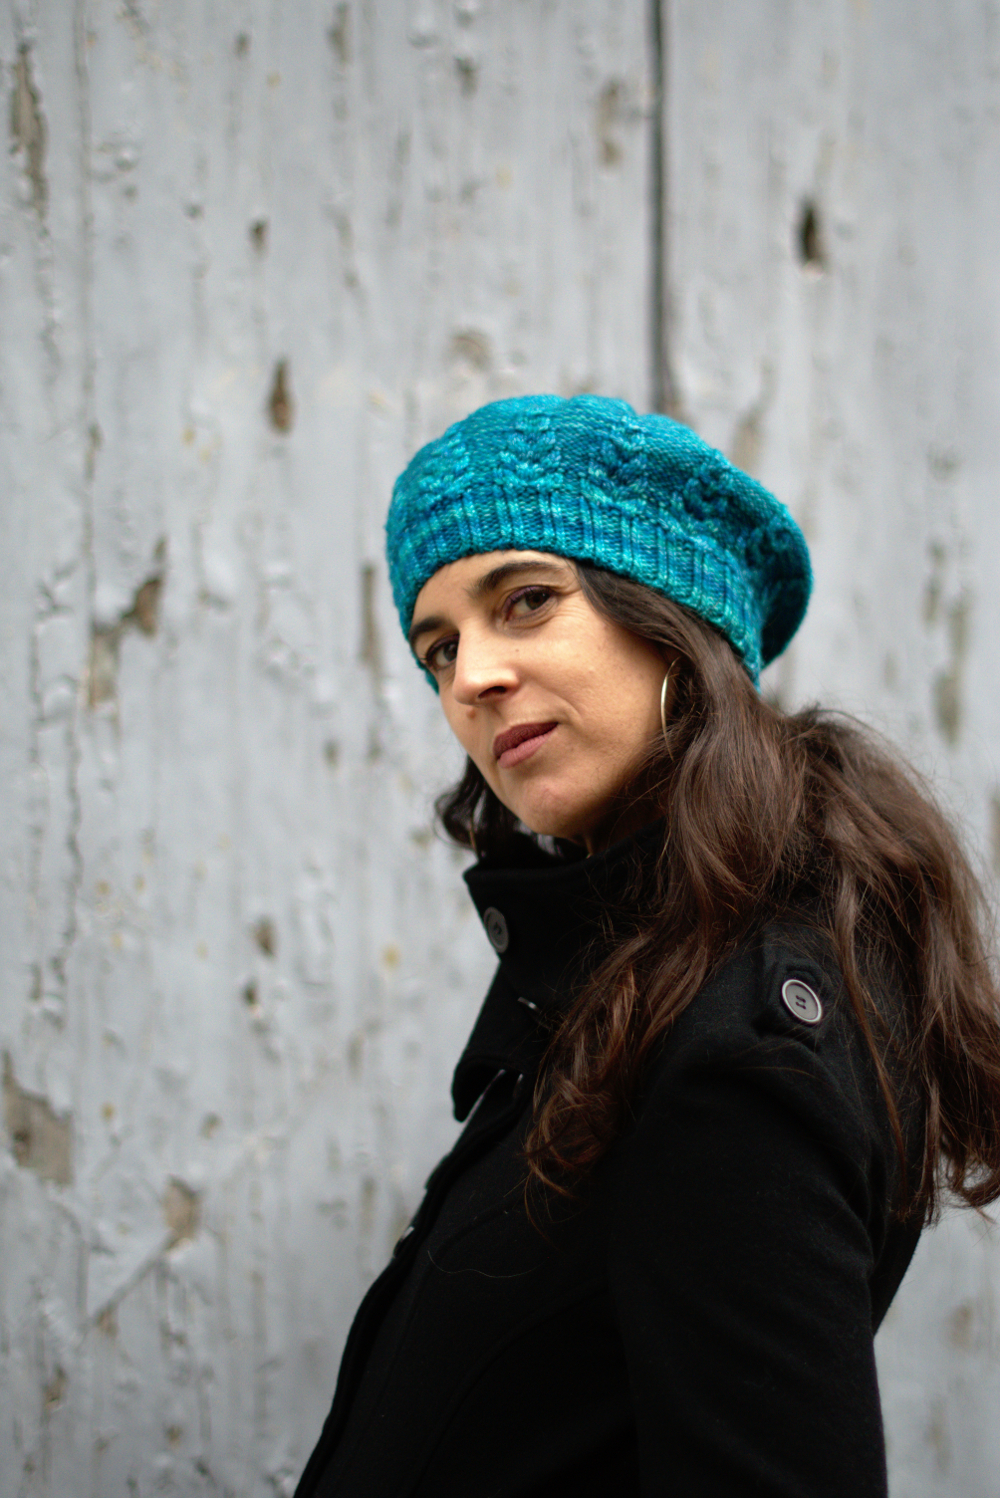 Armley Beret hand knitting pattern for DK weight yarn